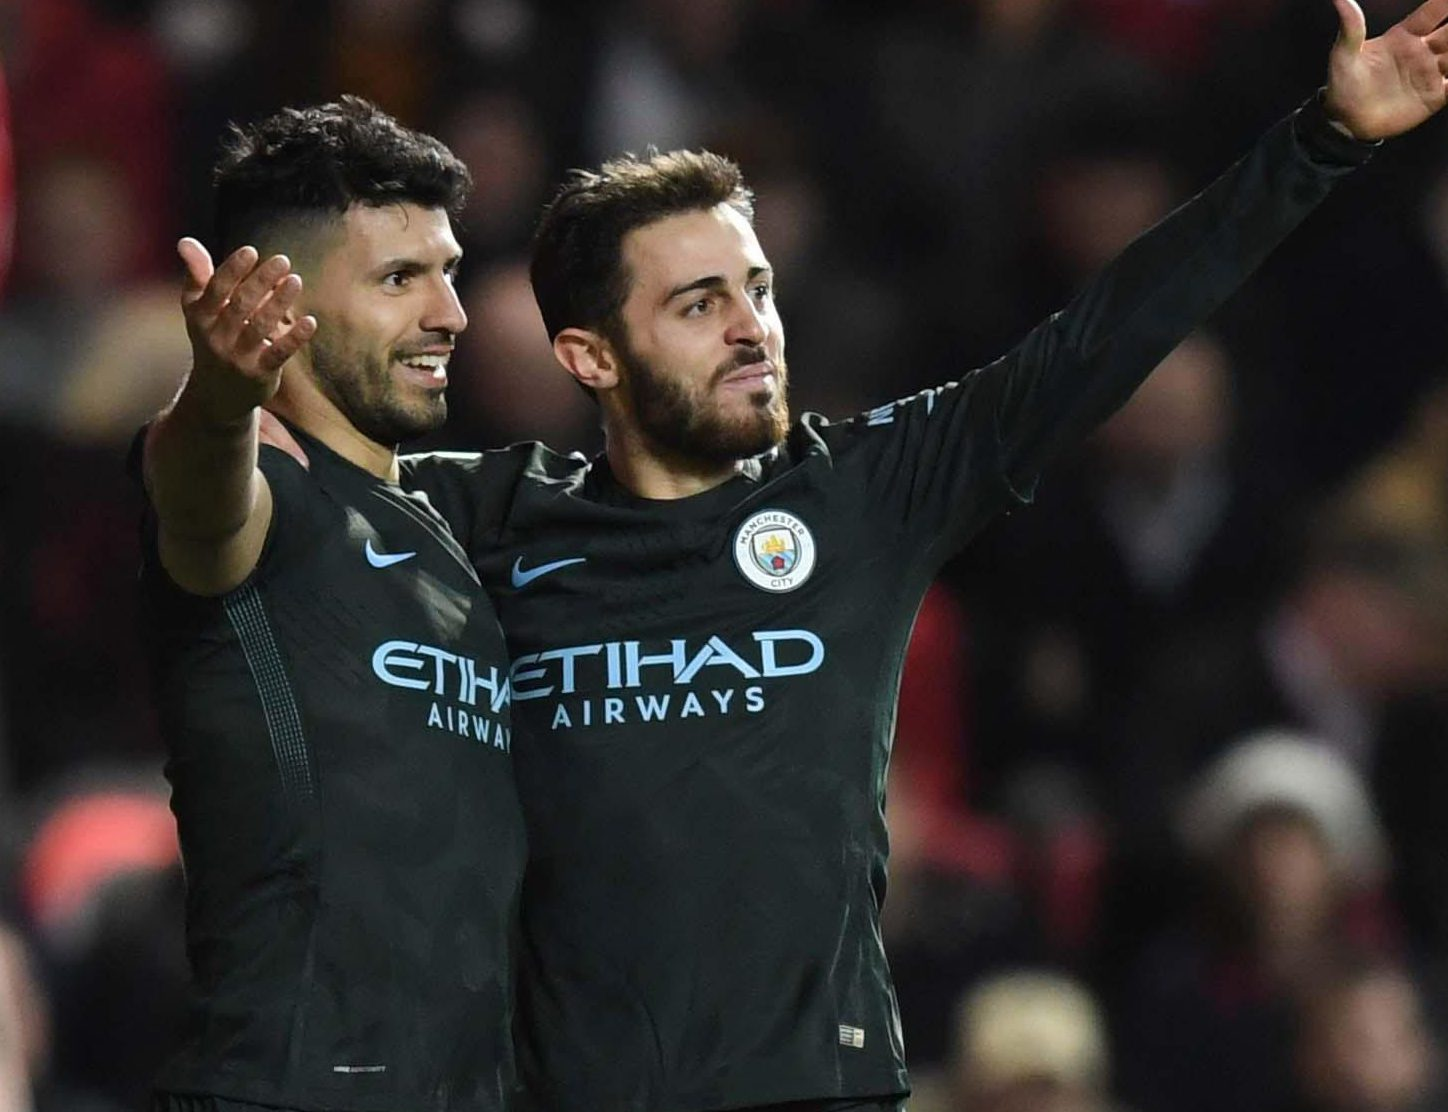 Sergio Aguero also netted as City ran out 2-1 winners on the night against Bristol City